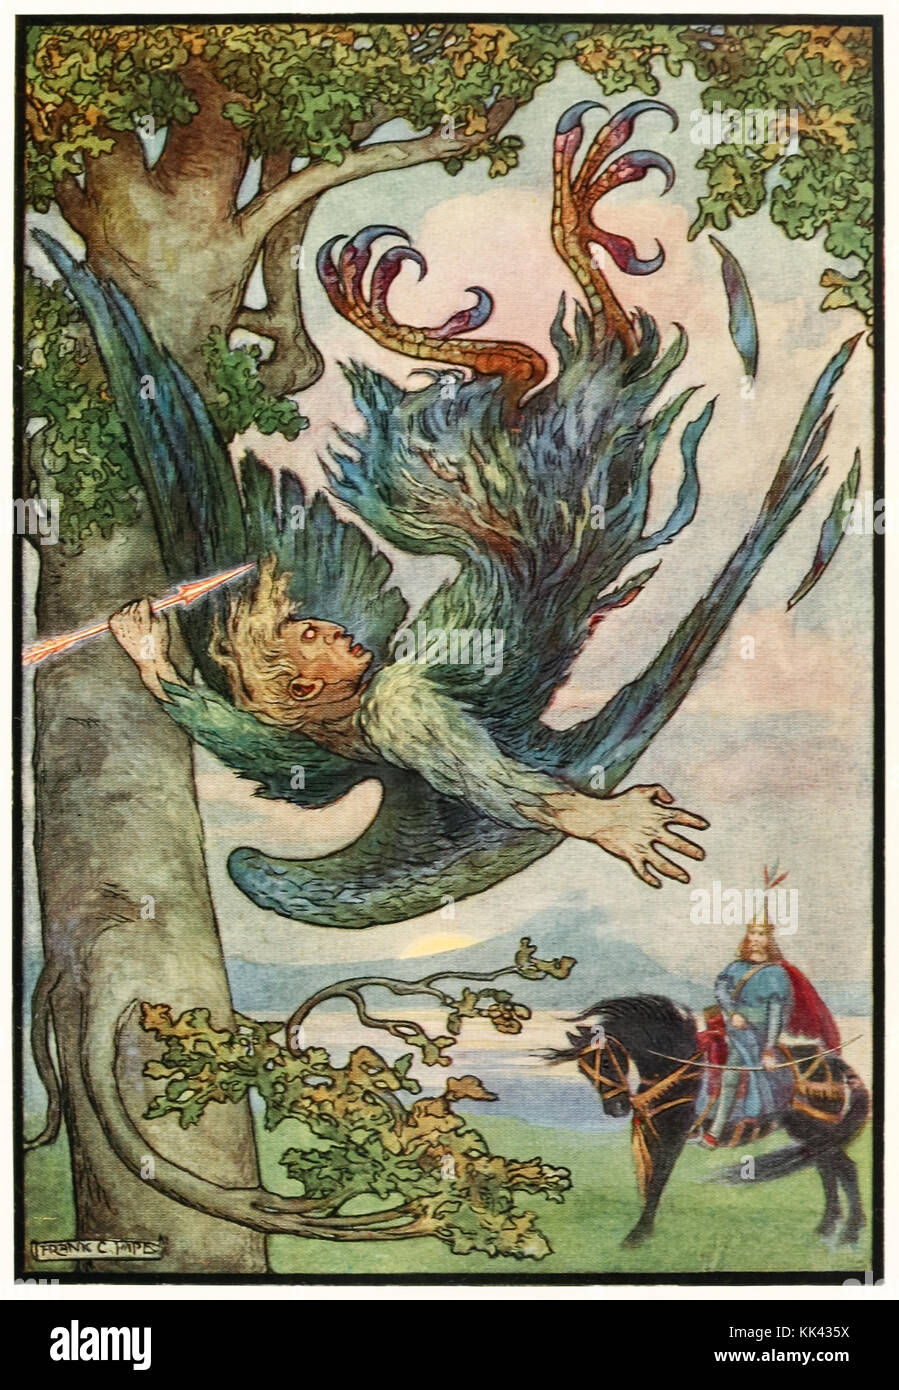 'Nightingale the Robber fell from his nest in the old oaks' from 'The Russian Story Book' by Richard Wilson (1878 - Stock Image